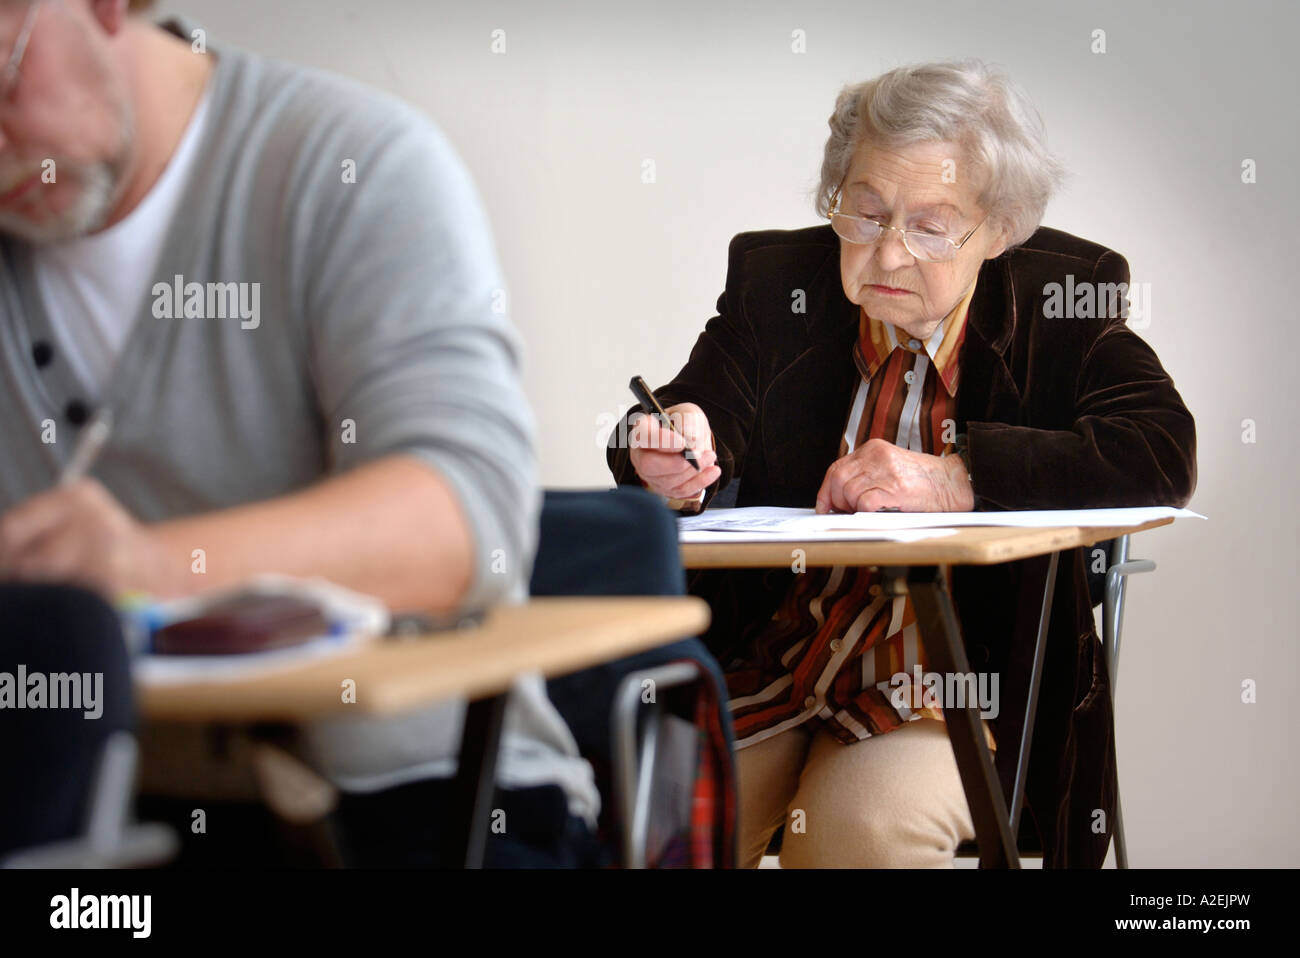 A RETIRED CONTESTANT AT THE TIMES NATIONAL CROSSWORD COMPETITION CUP DURING THE CHAMPIONSHIPS IN CHELTENHAM UK 2006 Stock Photo